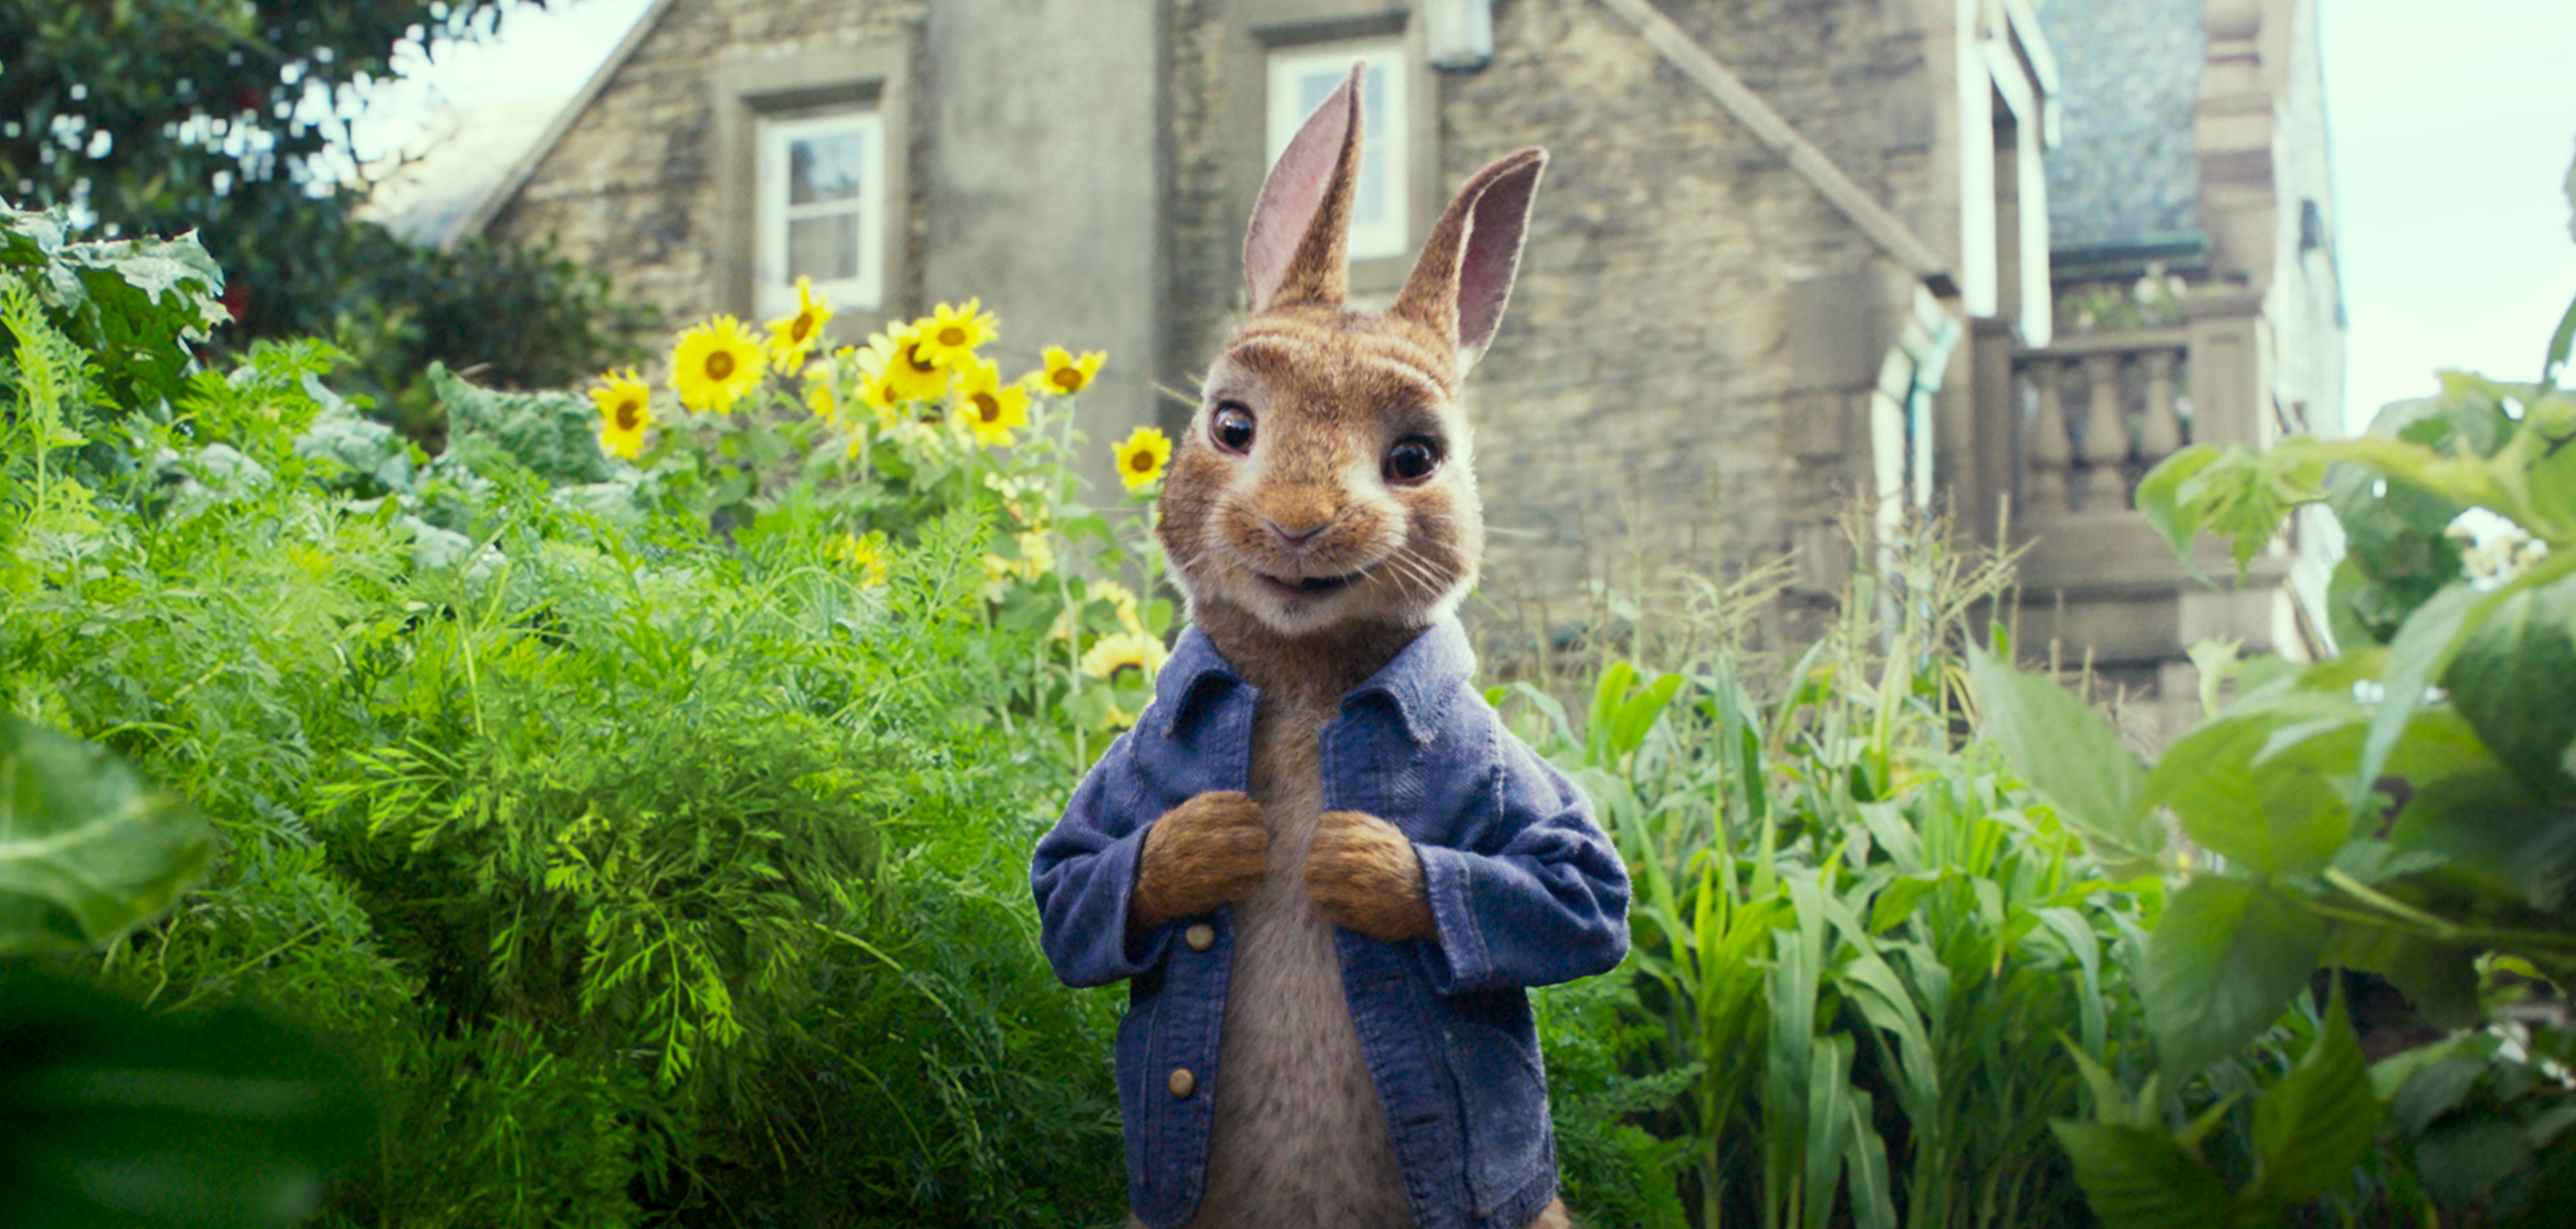 Peter Rabbit: Turning Sydney's summery Centennial Park into Beatrix Potter's frosty England is all part of the day job for Animal Logic's VP of Development & Production, Felicity Staunton, News